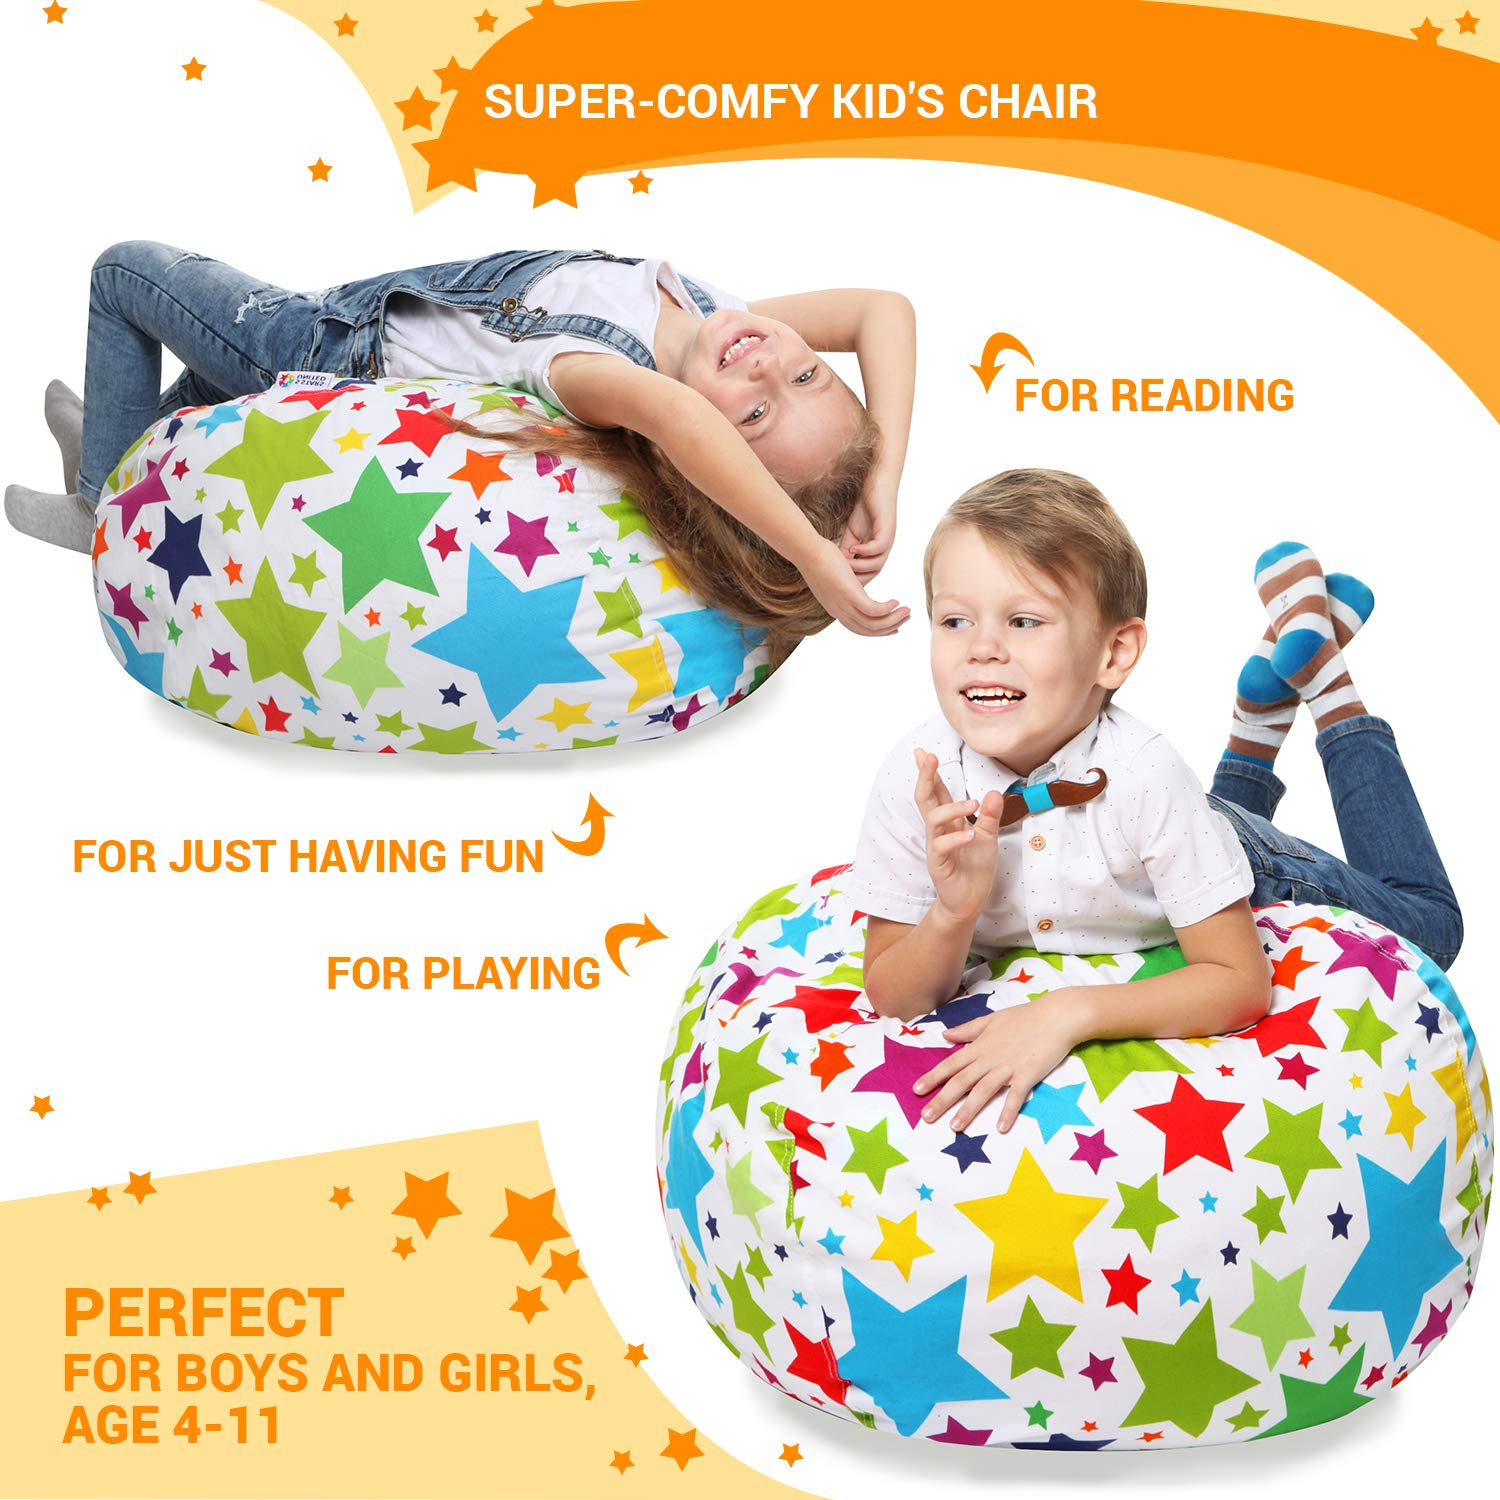 Stuffed Animal Storage Bean Bag - Cover Only - Large Beanbag Chairs for Kids - 90+ Plush Toys Holder and Organizer for Boys and Girls - 100% Cotton Canvas - Holiday Stars by 5 STARS UNITED (Image #5)